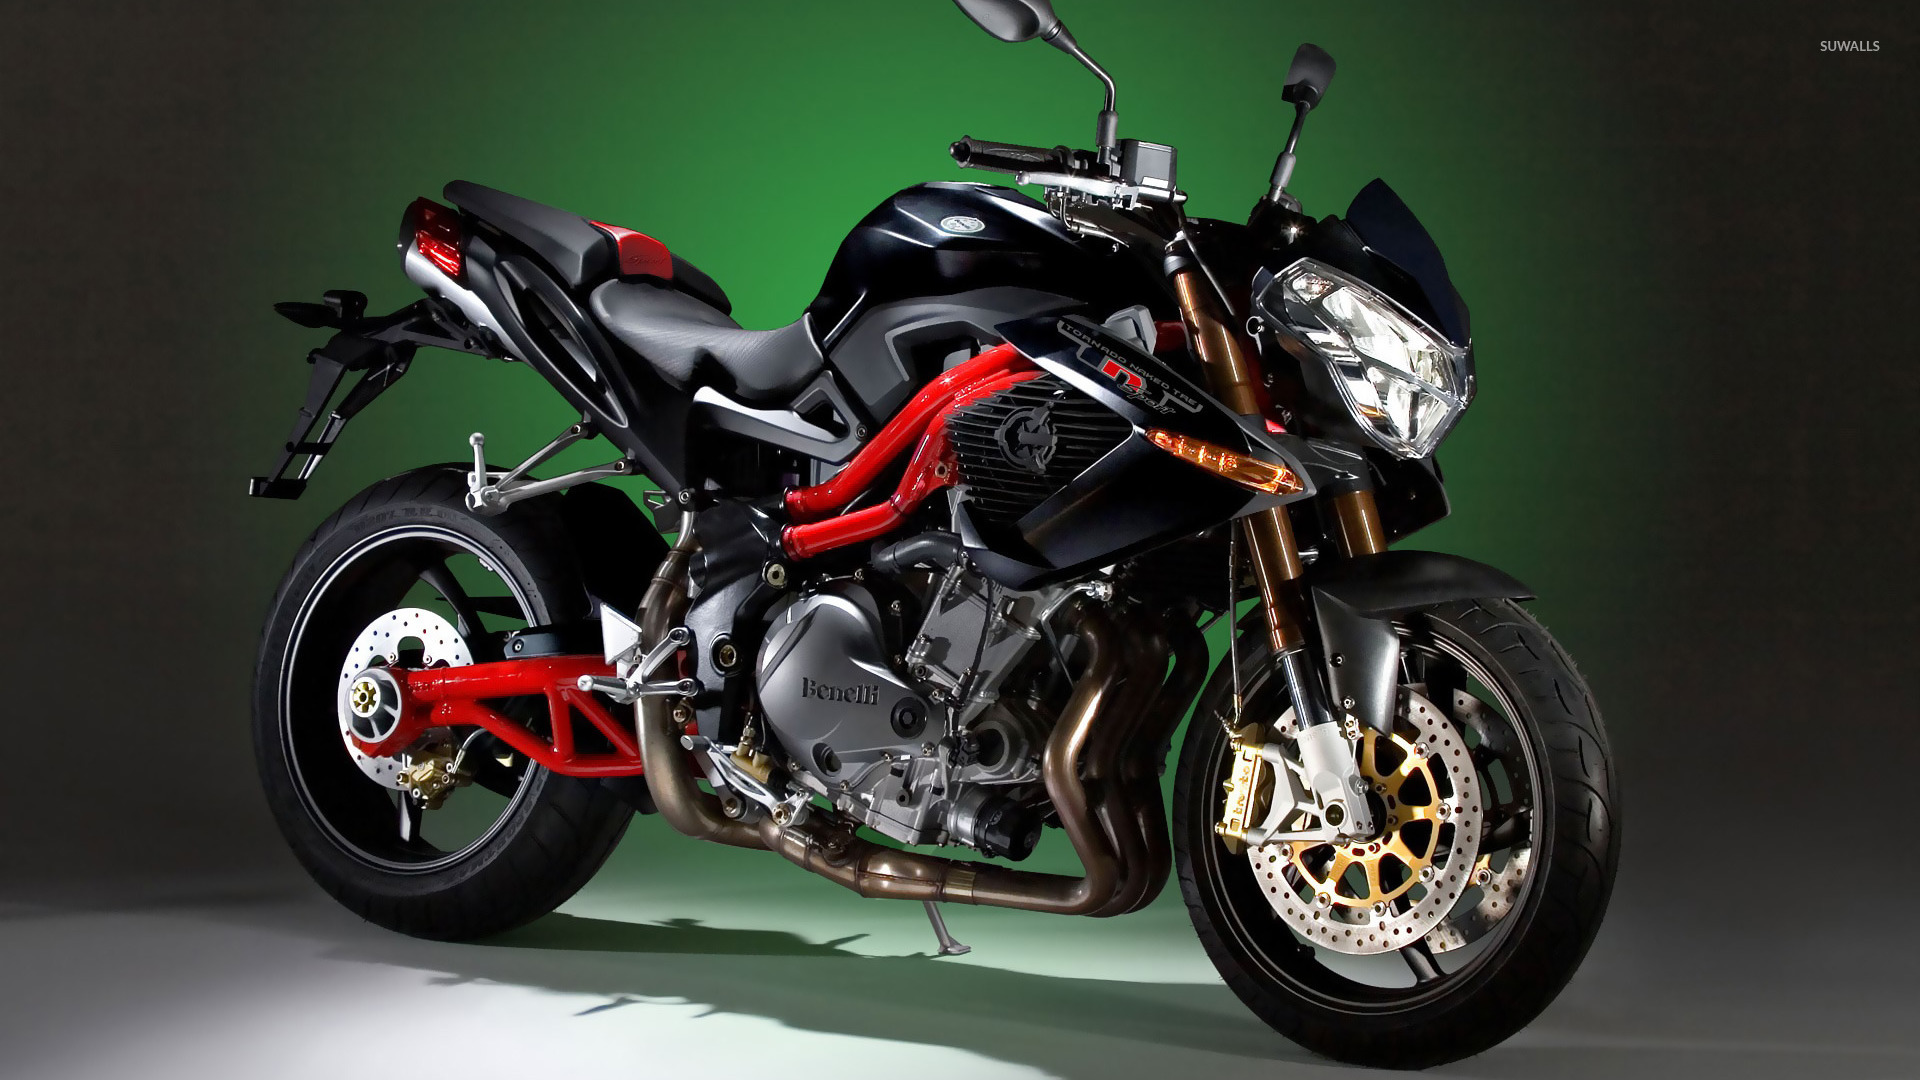 2013 Benelli Tornado Naked TRE 1130 R Review - Top Speed